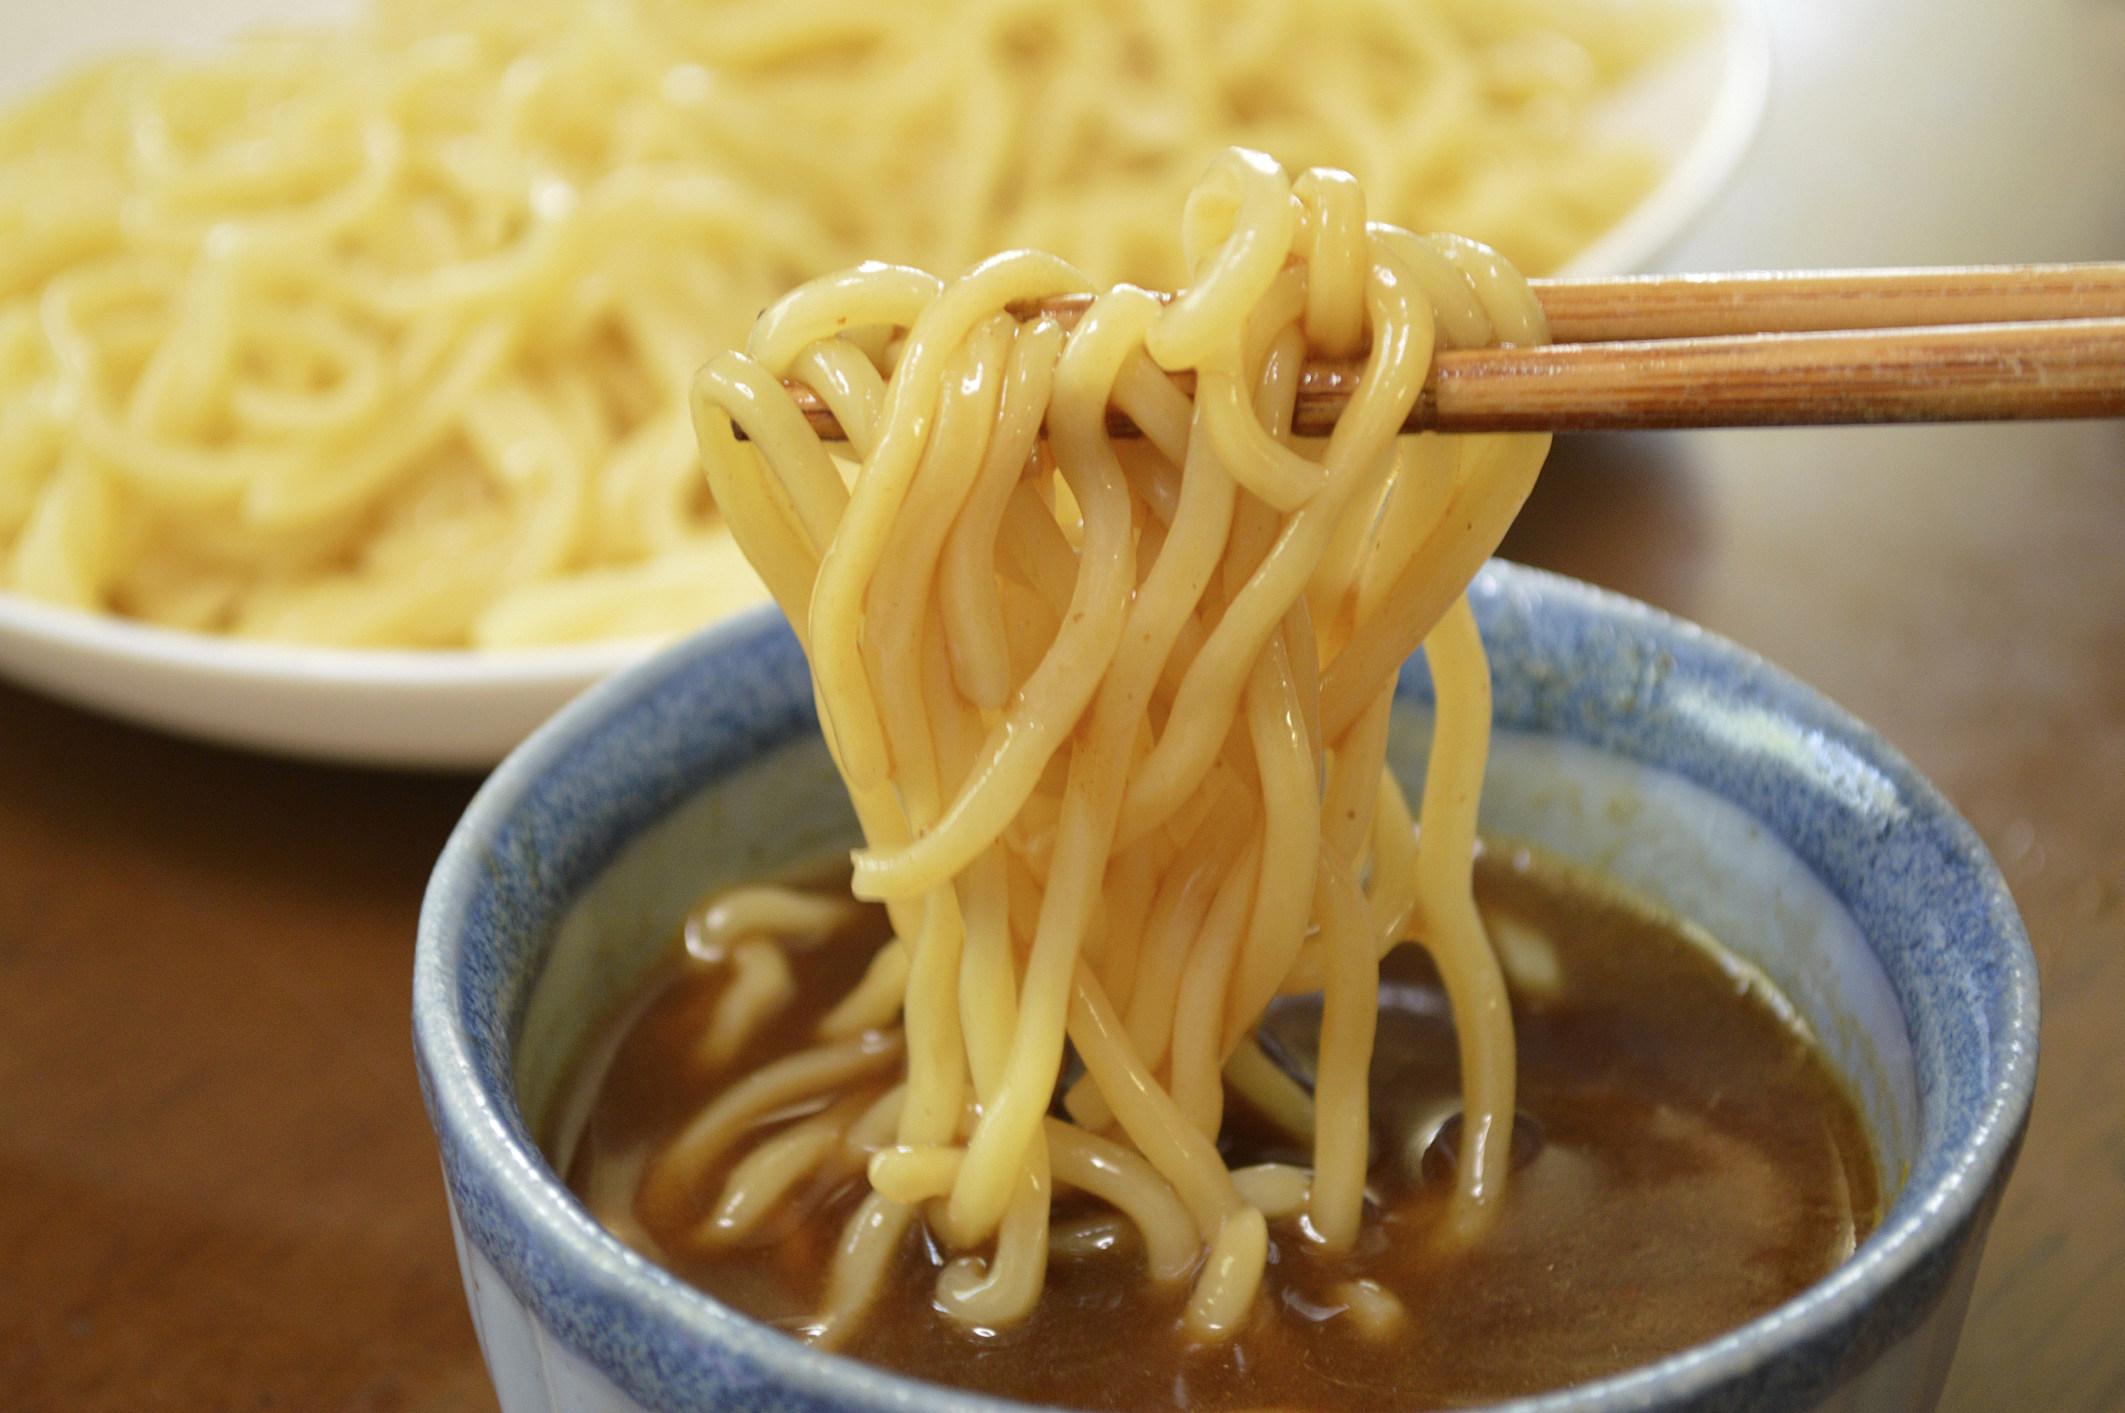 ramen recipes youtube to Noodles Your Level Ways [RECIPES] New Ramen Take a to